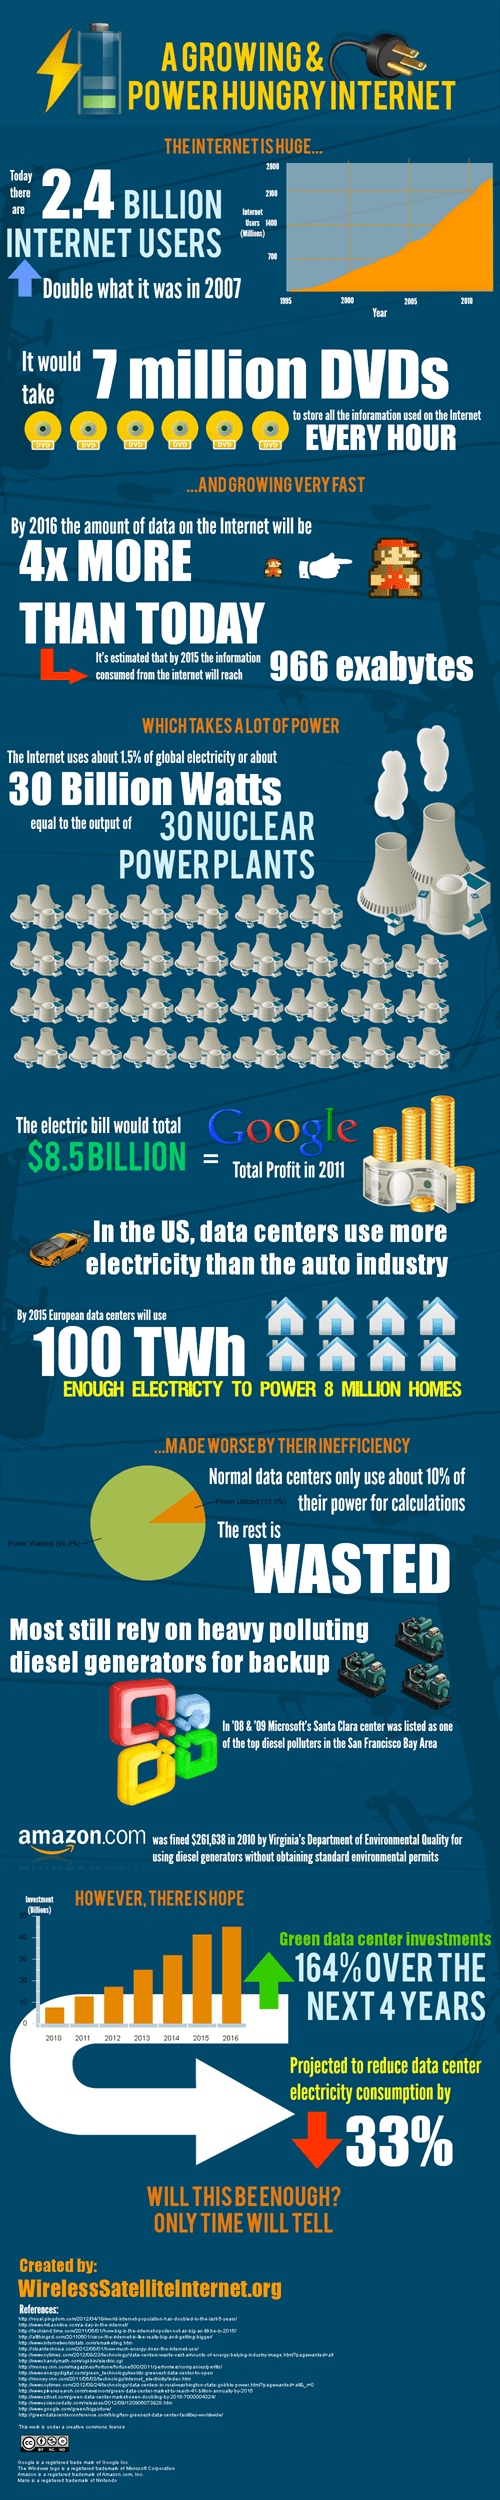 internet power hungry data electricity enviroment infographic